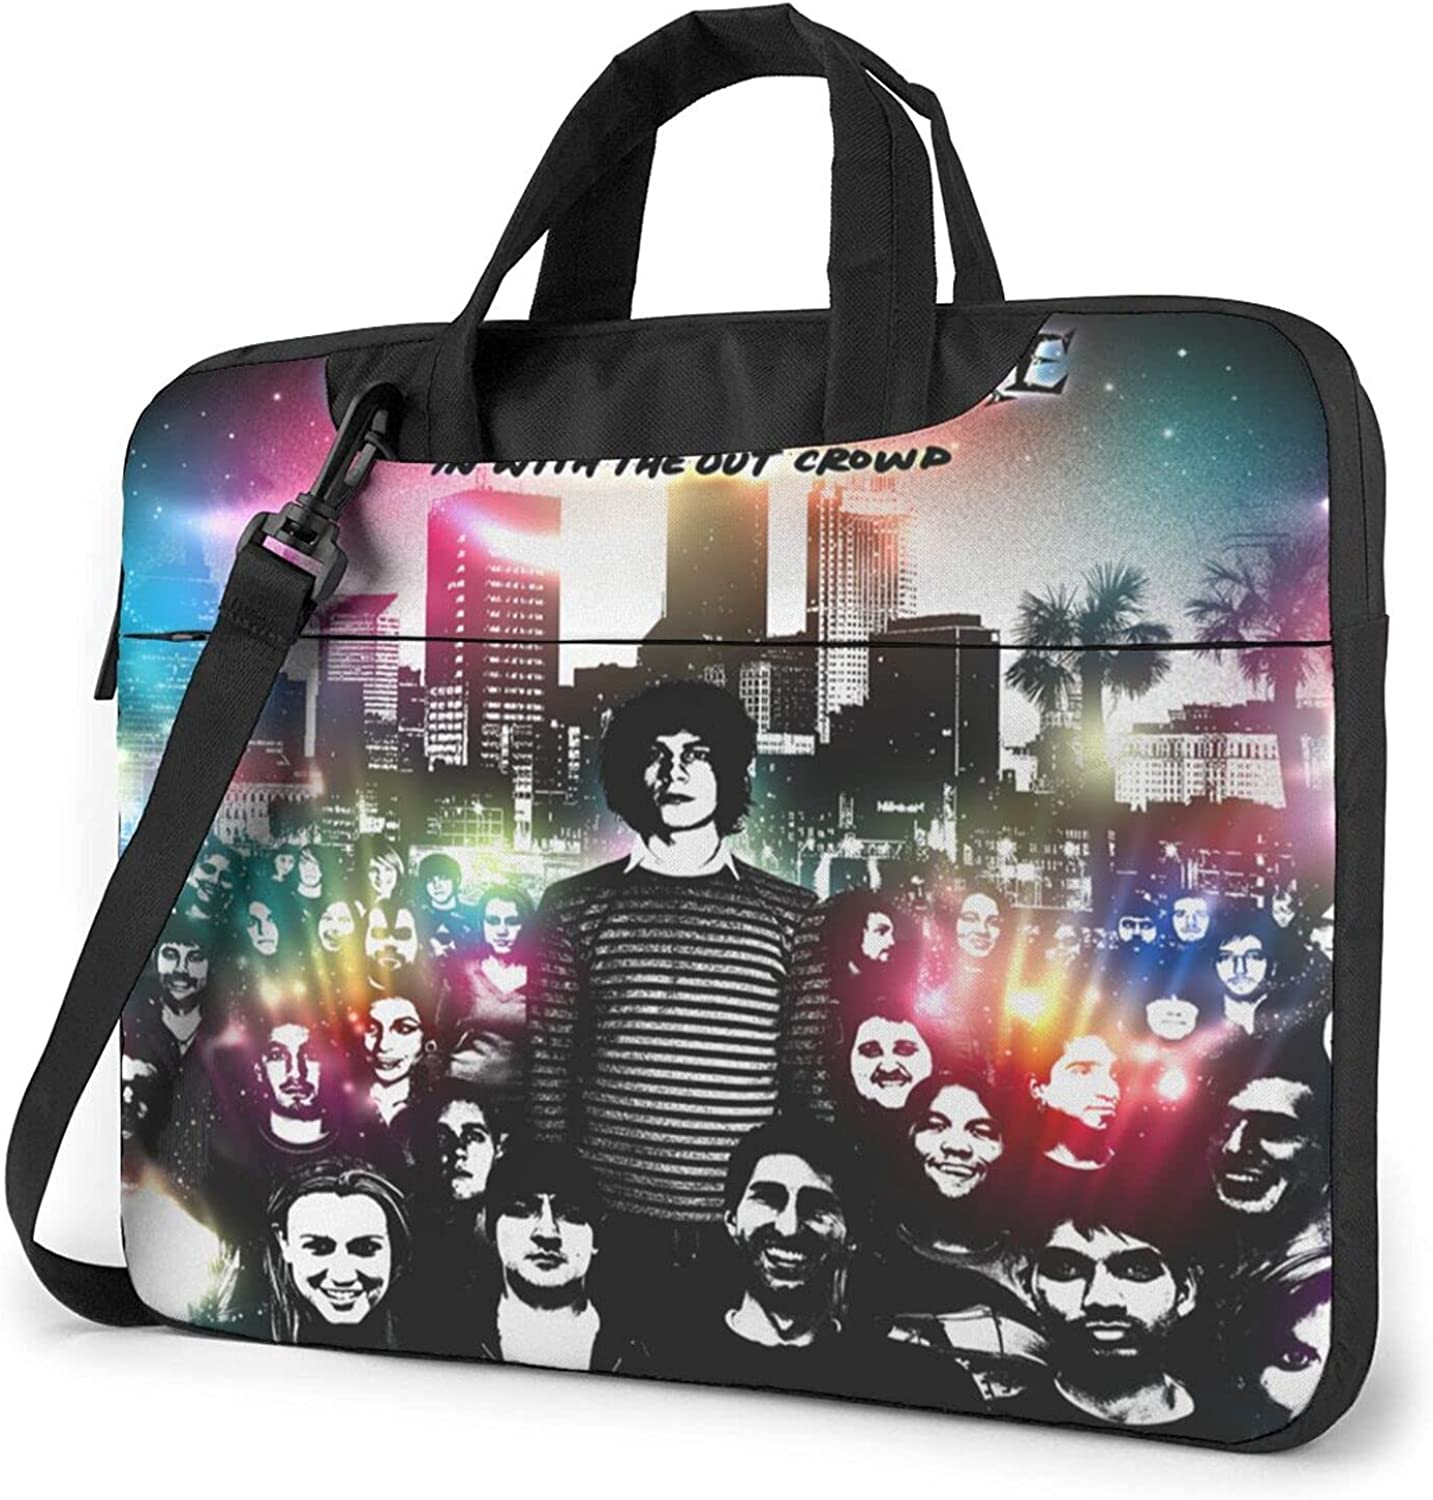 Laptop Sleeve Case Computer Bag High quality Large-scale sale Jake Less Than